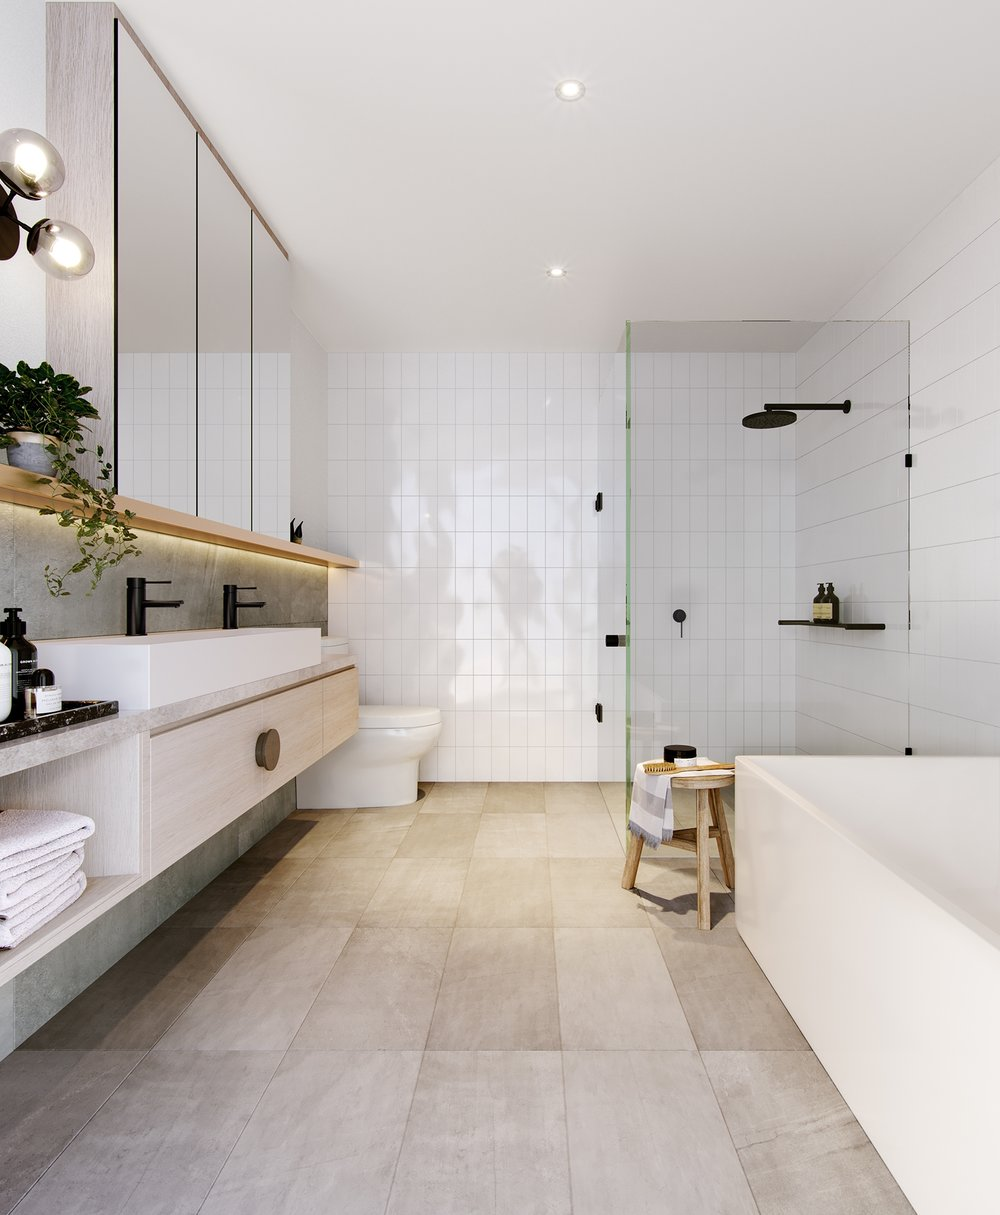 Chamberlain Architects La Sal Living, Chelsea